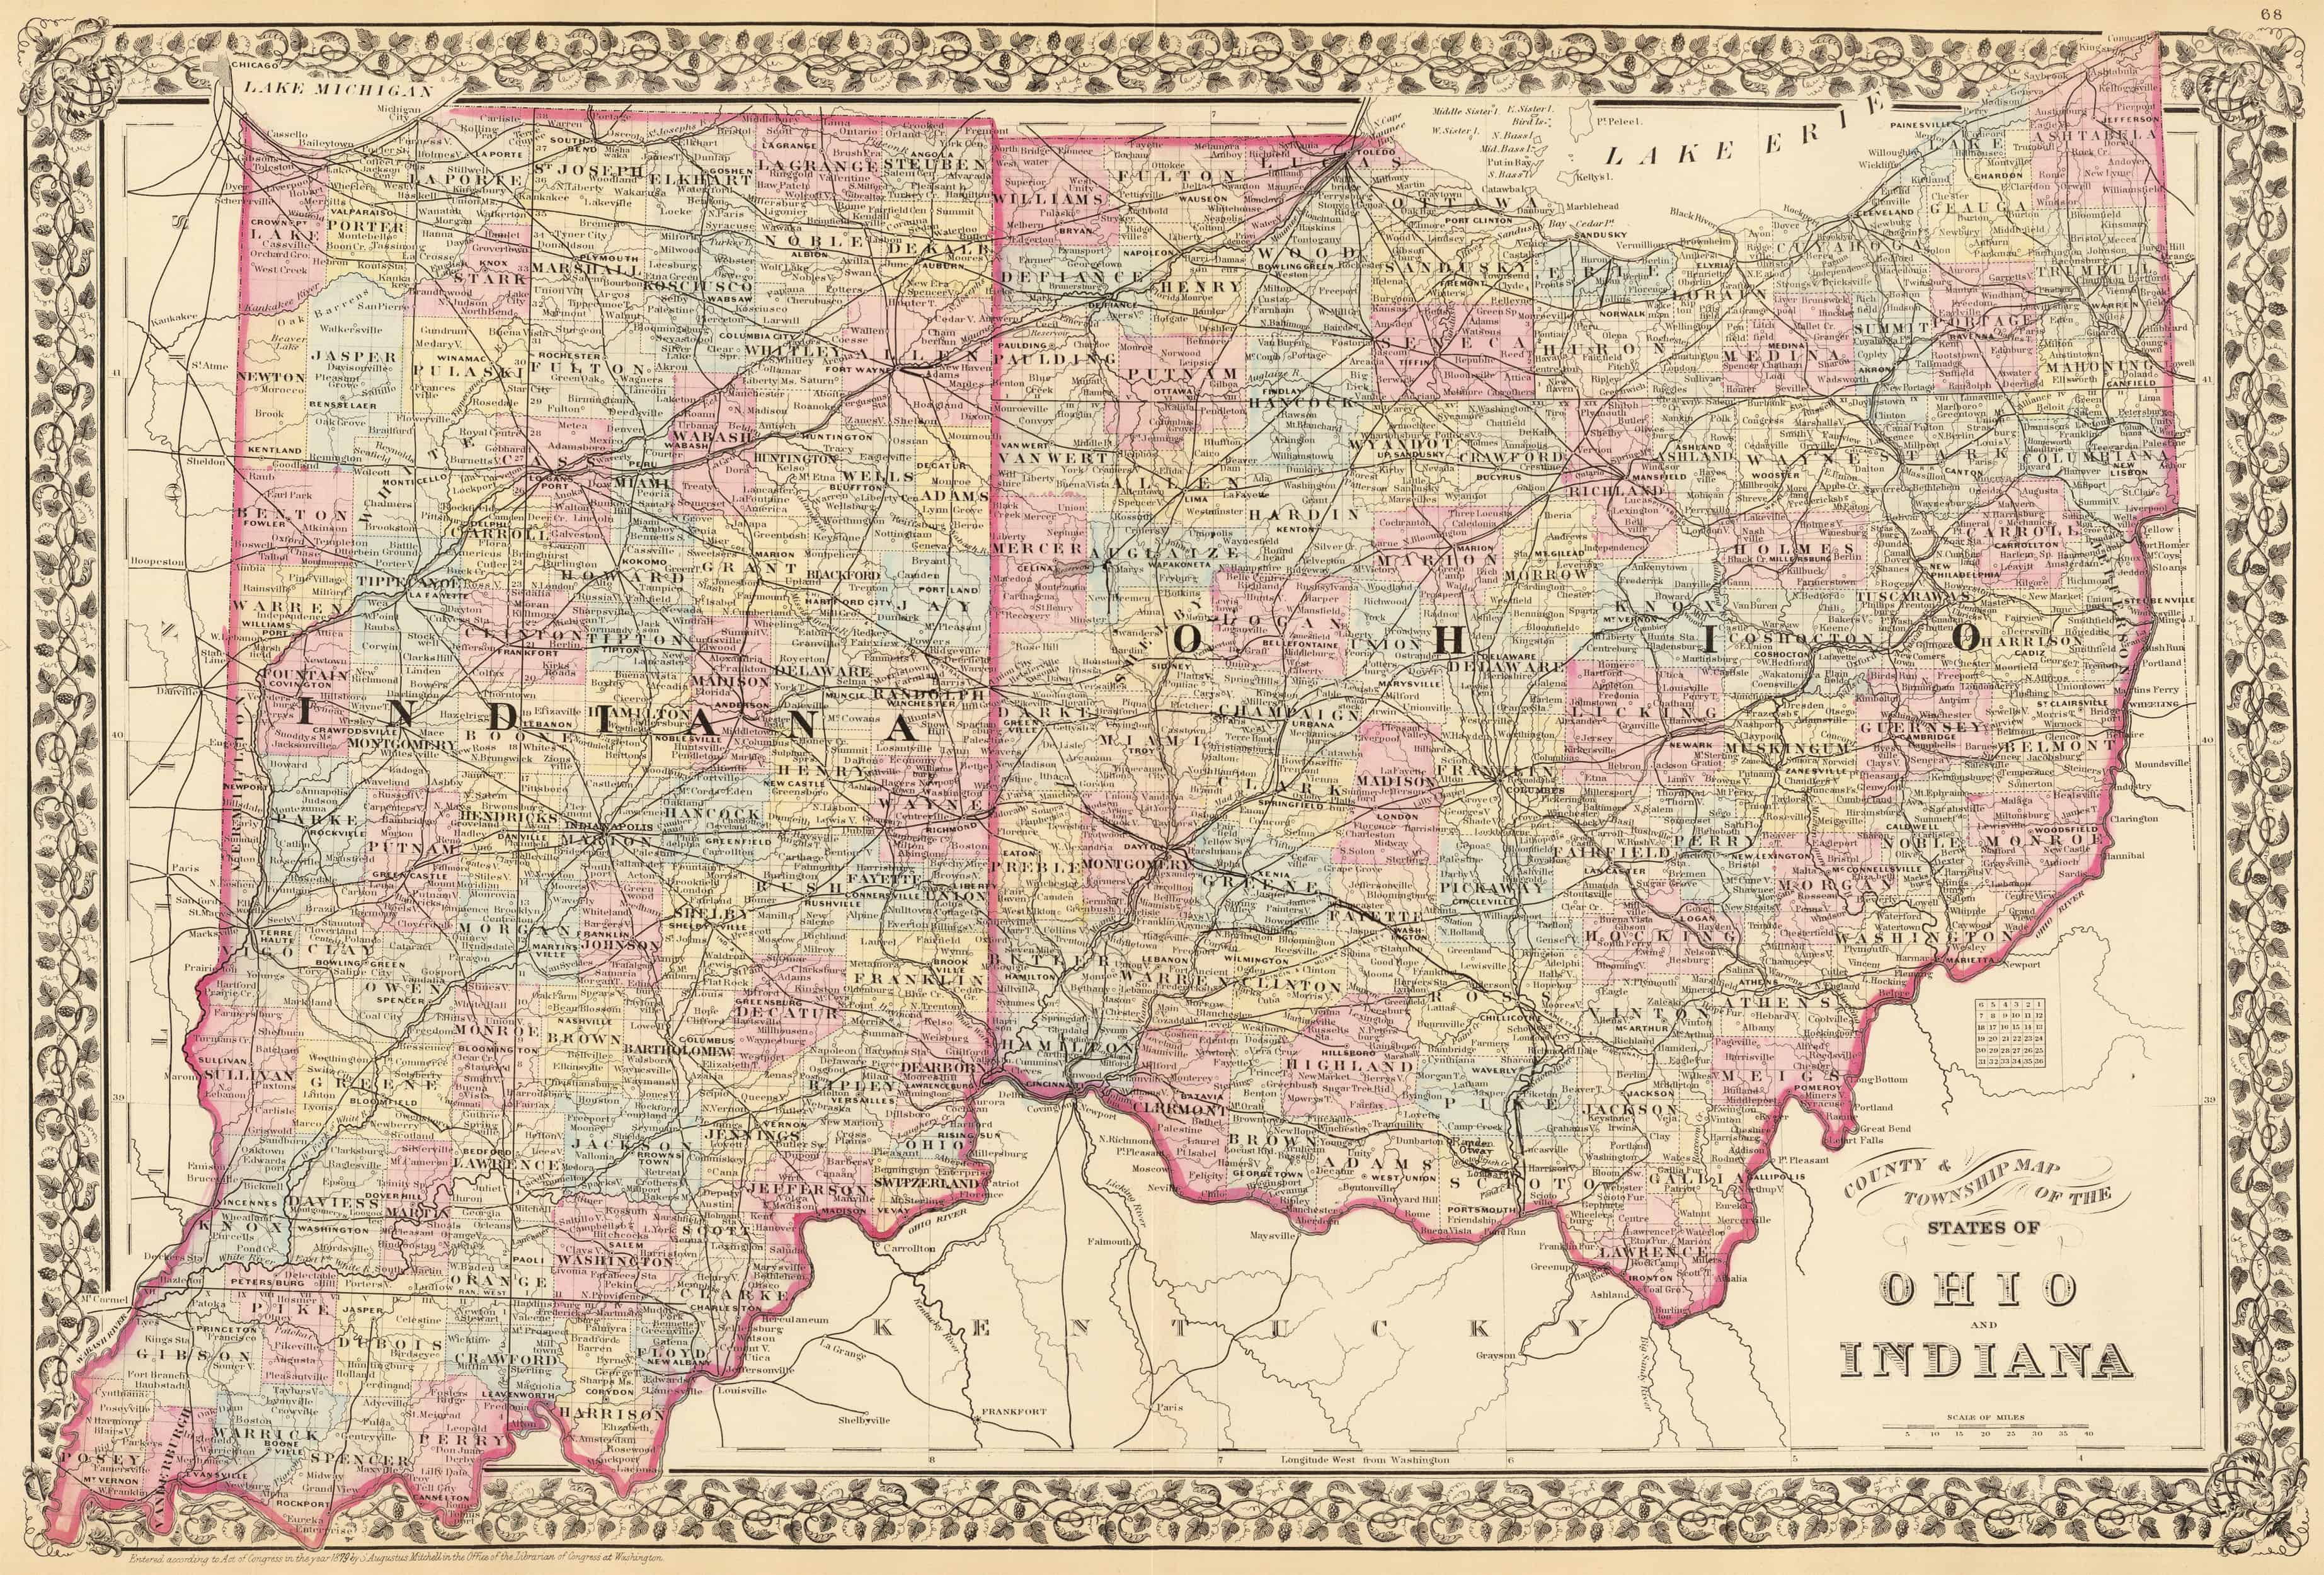 Old Historical City, County and State Maps of Ohio on northwest ohio cities map, bowling green state university ohio map, erie county ohio map, sandusky ohio road map, ottawa county ohio map, city of youngstown ohio map, sandusky river ohio map, scioto county ohio map, seneca county ohio map, upper sandusky ohio map, wood county ohio map, sandusky ohio folded street map, ohio ohio map, wyandot county ohio map, fremont ohio map, fort sandusky ohio map, eaton ohio street map, cuyahoga county ohio map, wake forest ohio map, henry county ohio map,